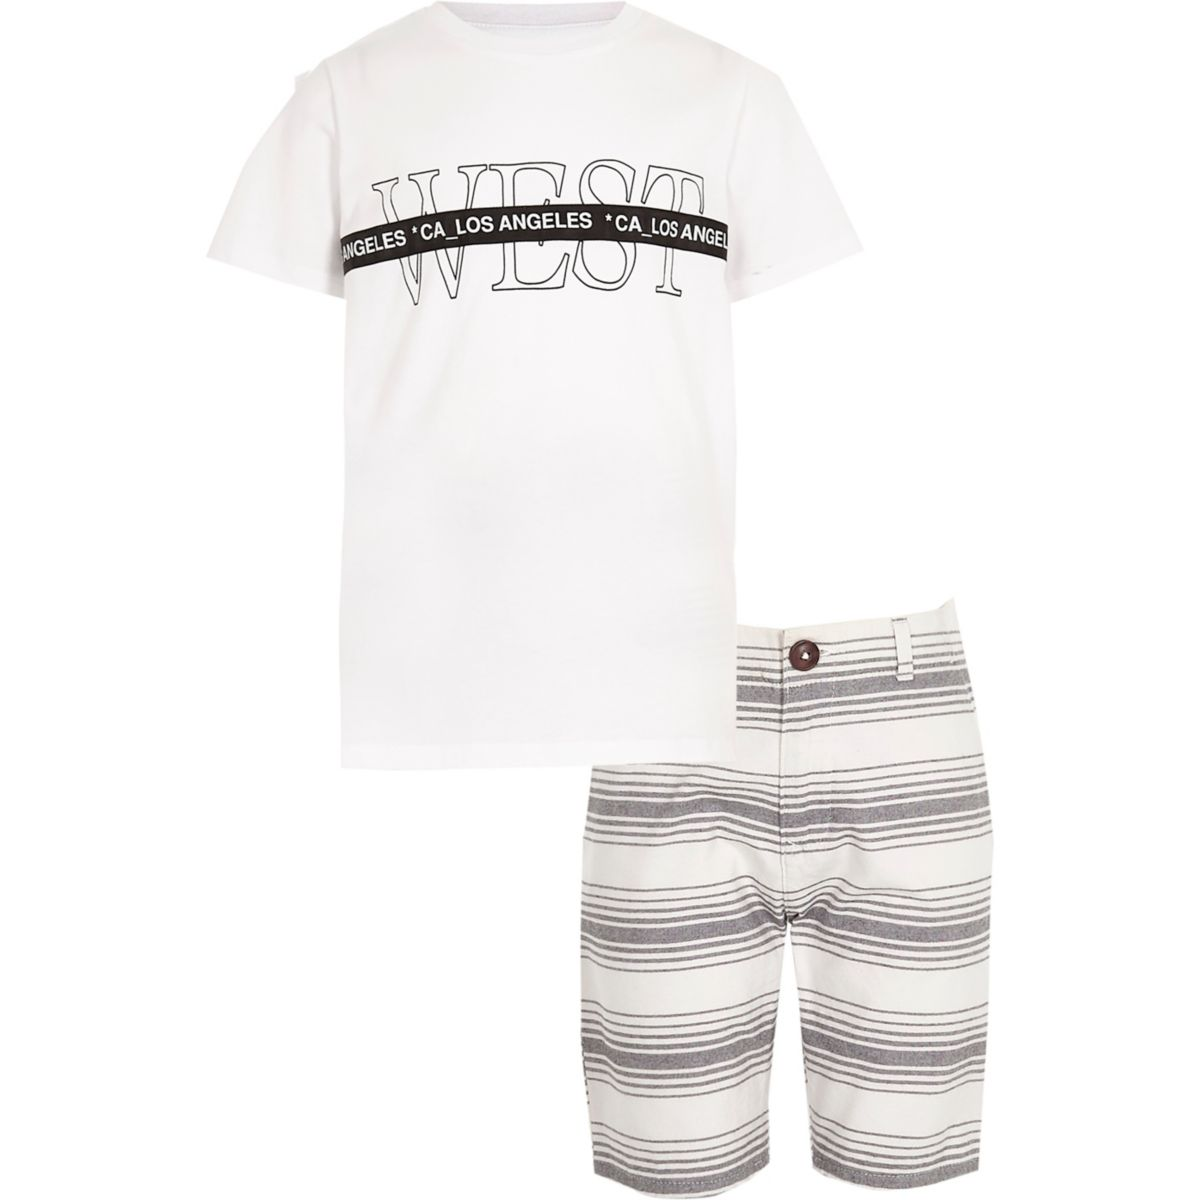 Boys white tape T-shirt and shorts outfit